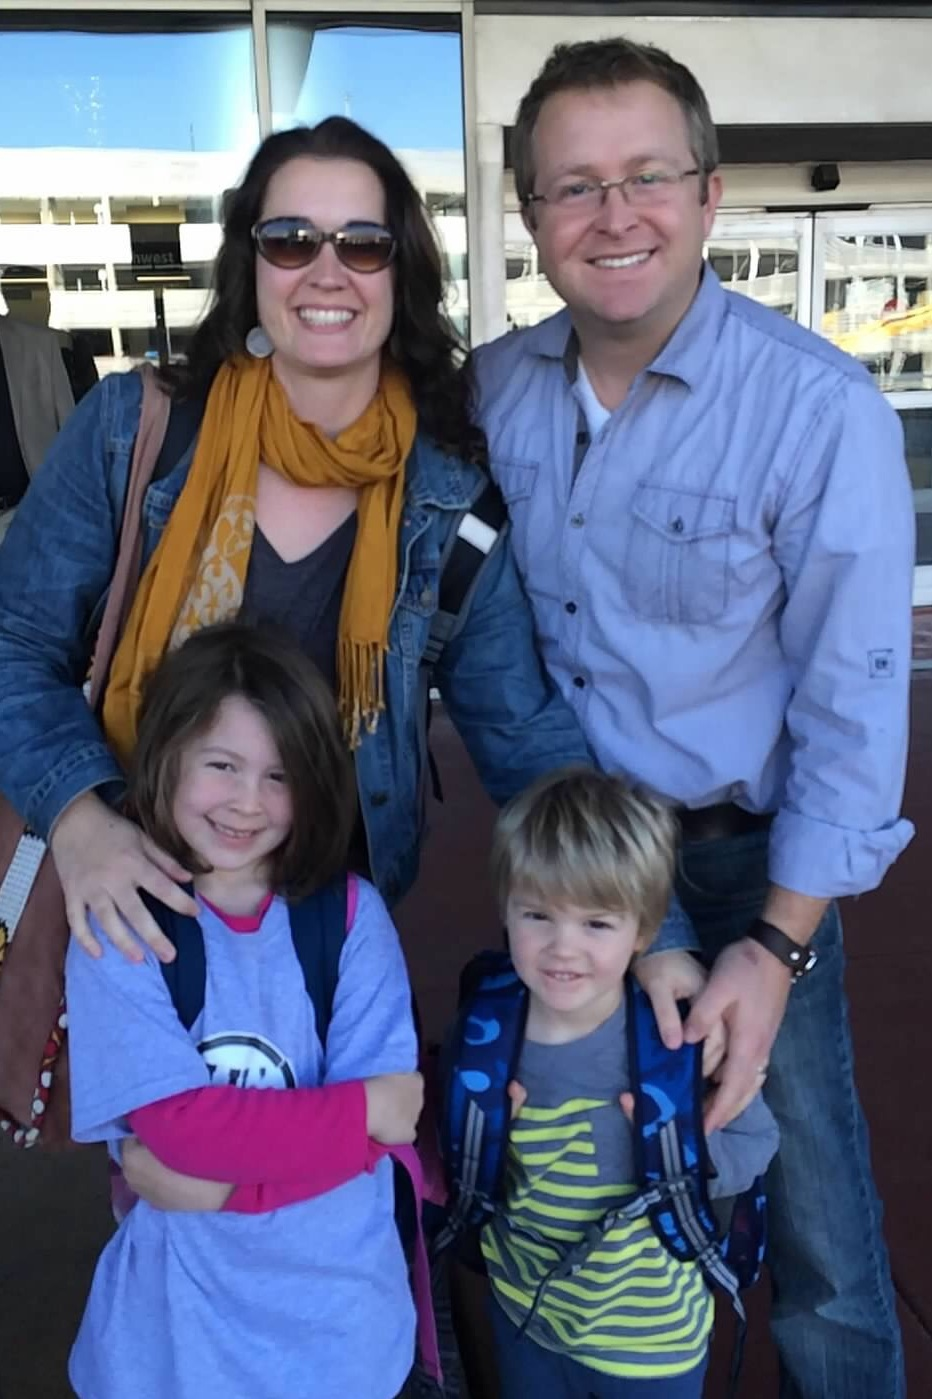 Lynn, Tim (serves with Int'l Projects Dept. in Boone), Stella and Bennett, as they started their journey to meet their new daughter in Uganda this past December.